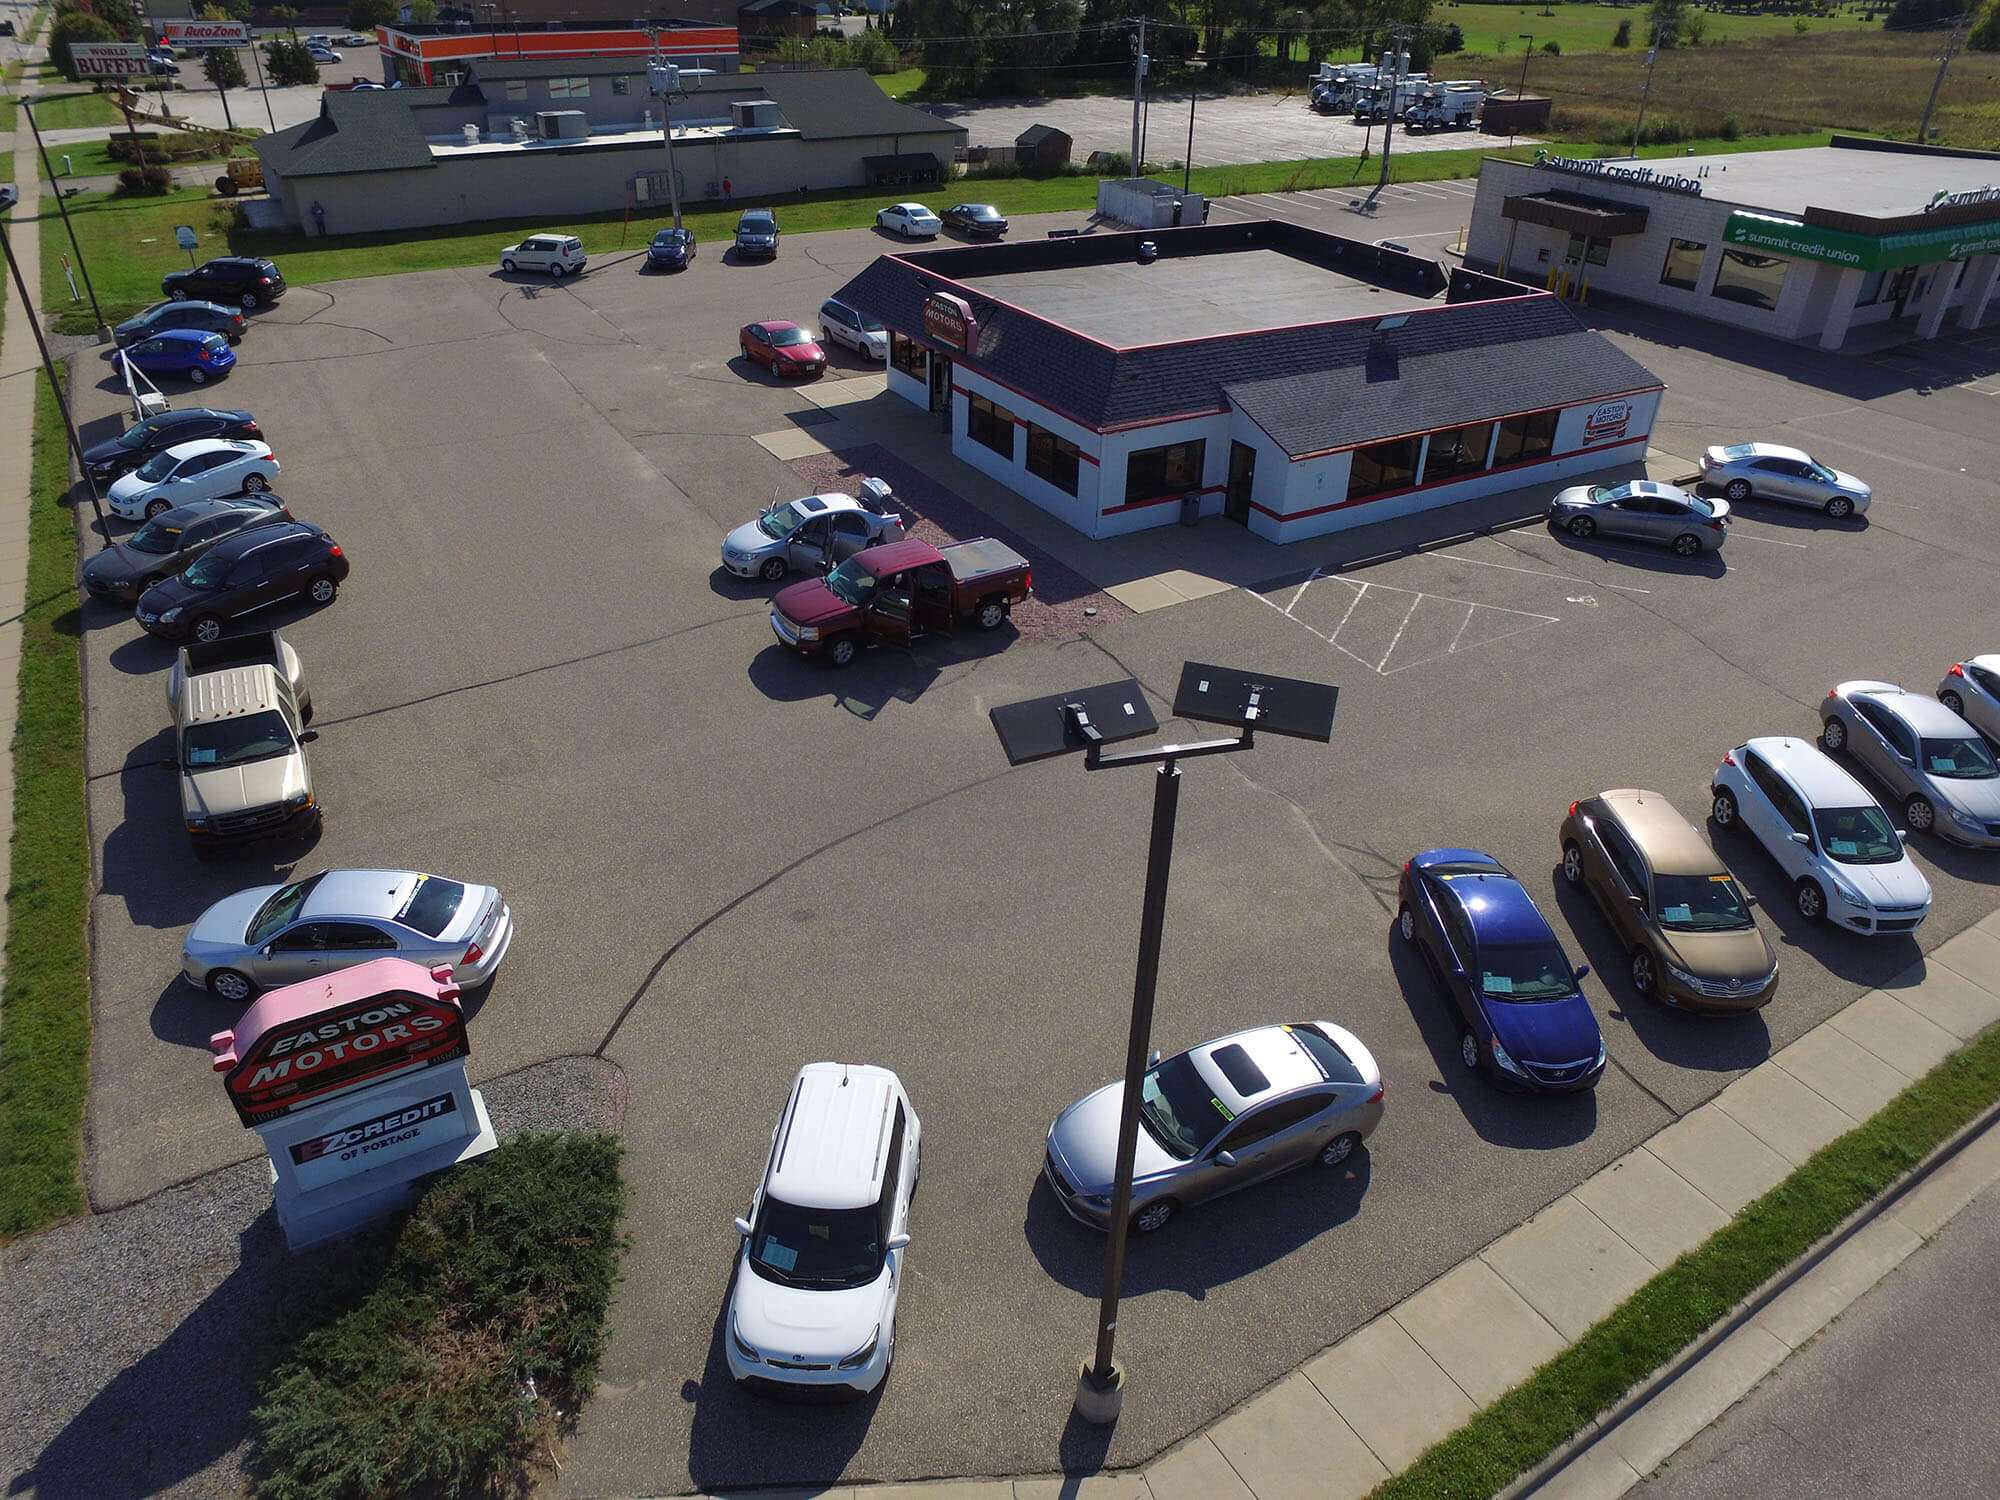 Portage used cars wisconsin dells wisconsin 53965 for Baraboo motors used cars